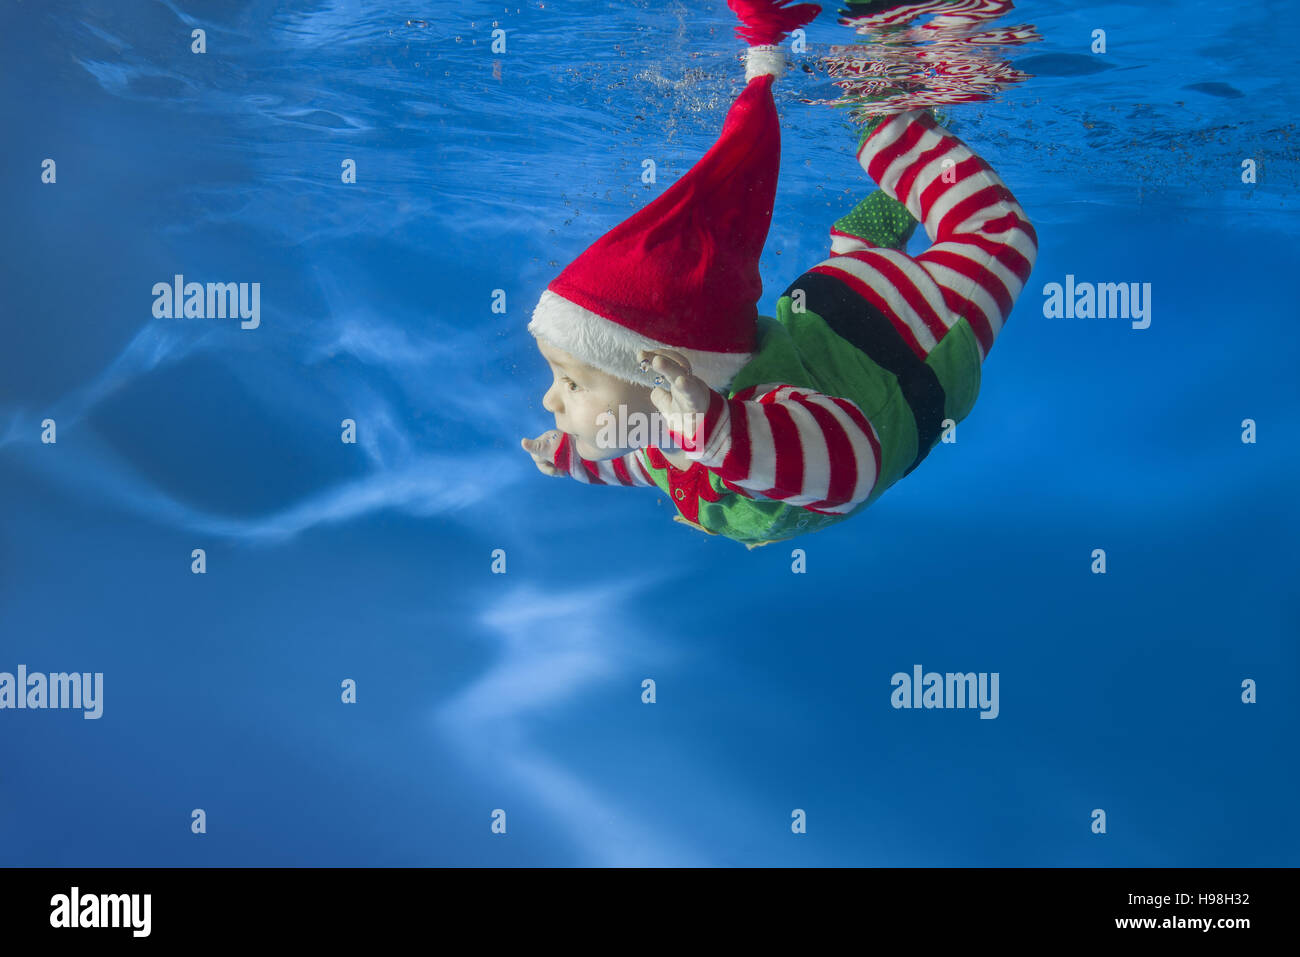 a little boy dressed as santas helper floats under water in the pool stock image